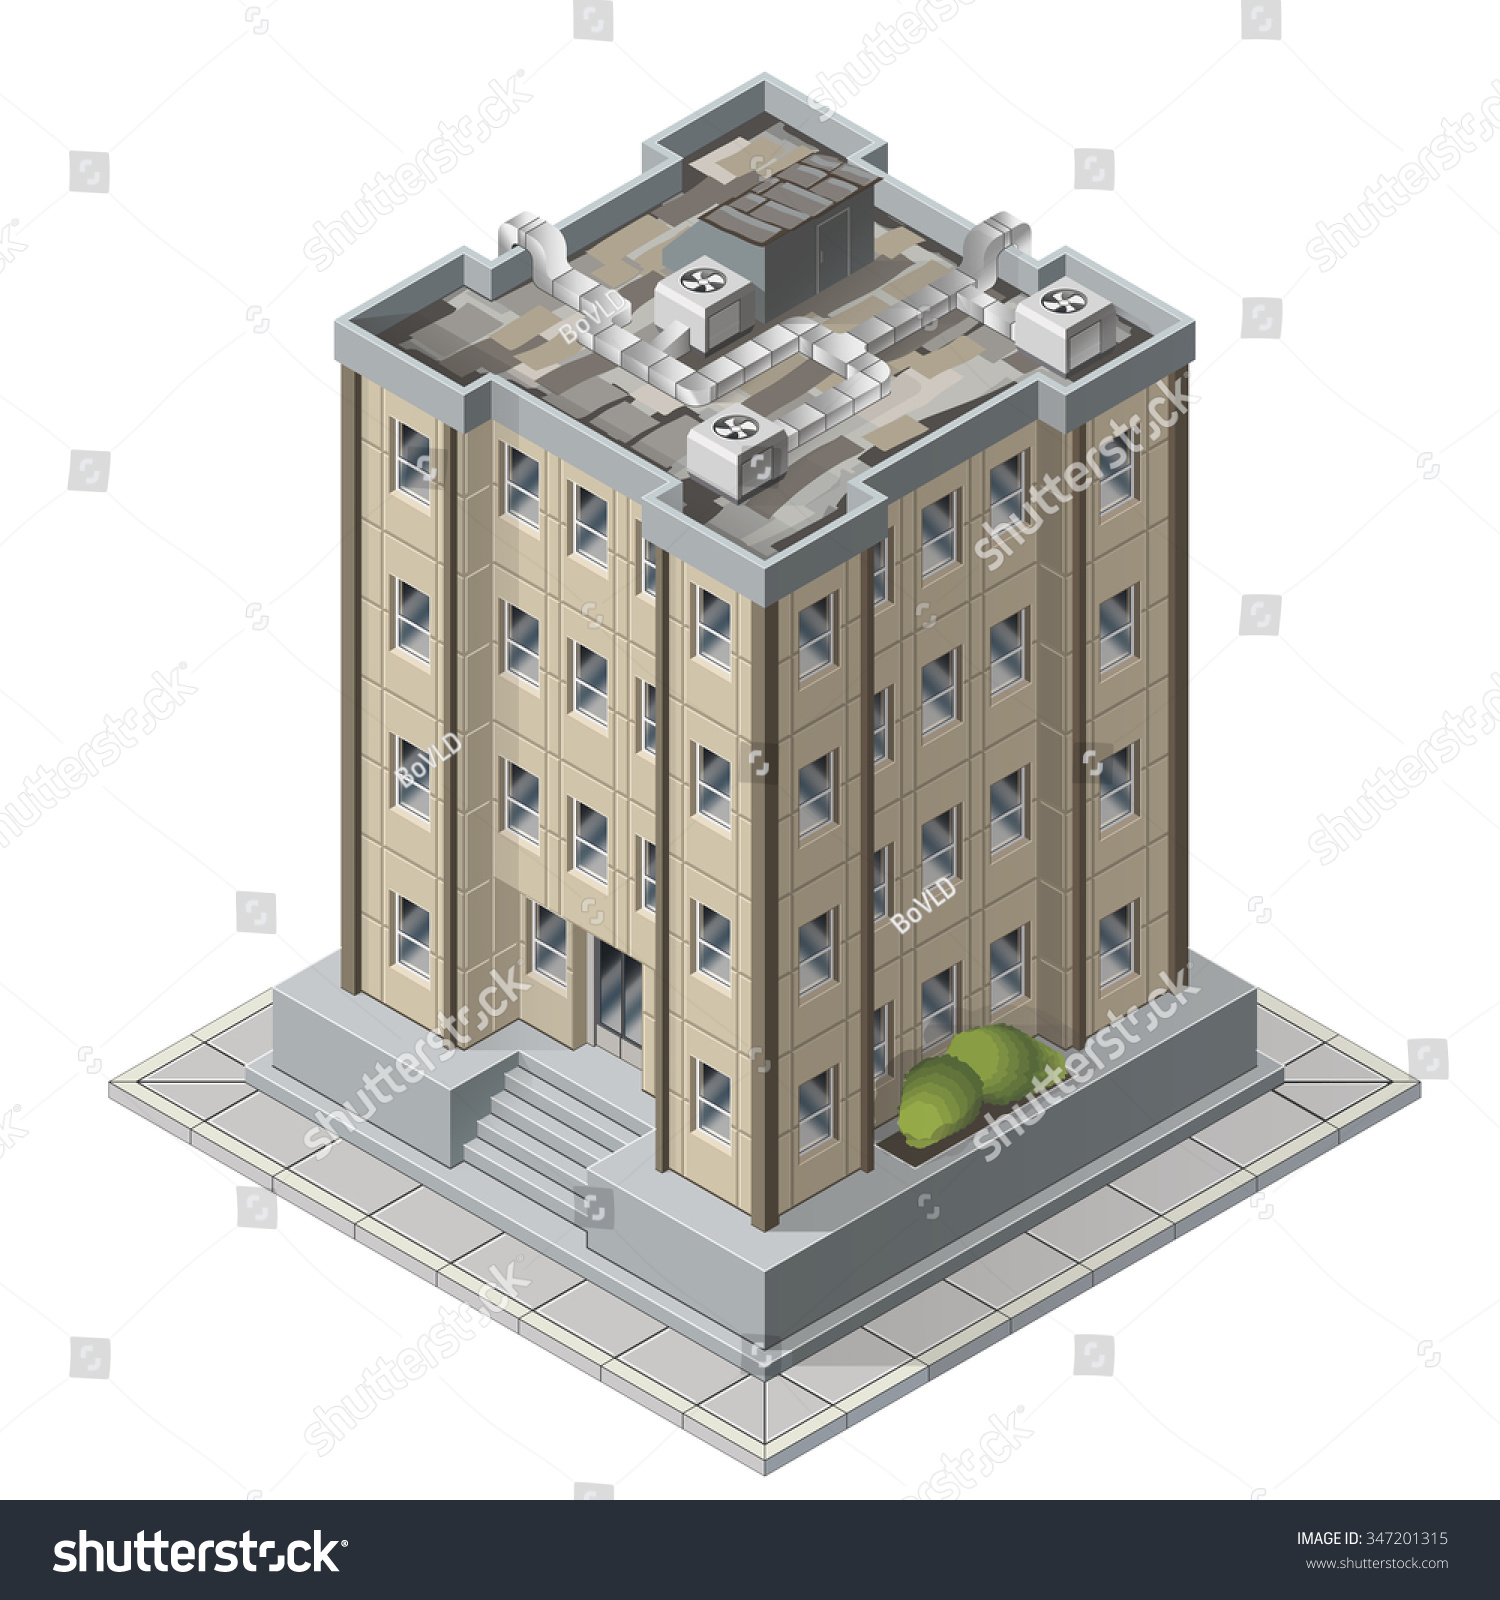 high rises isometric building icons game stock vector